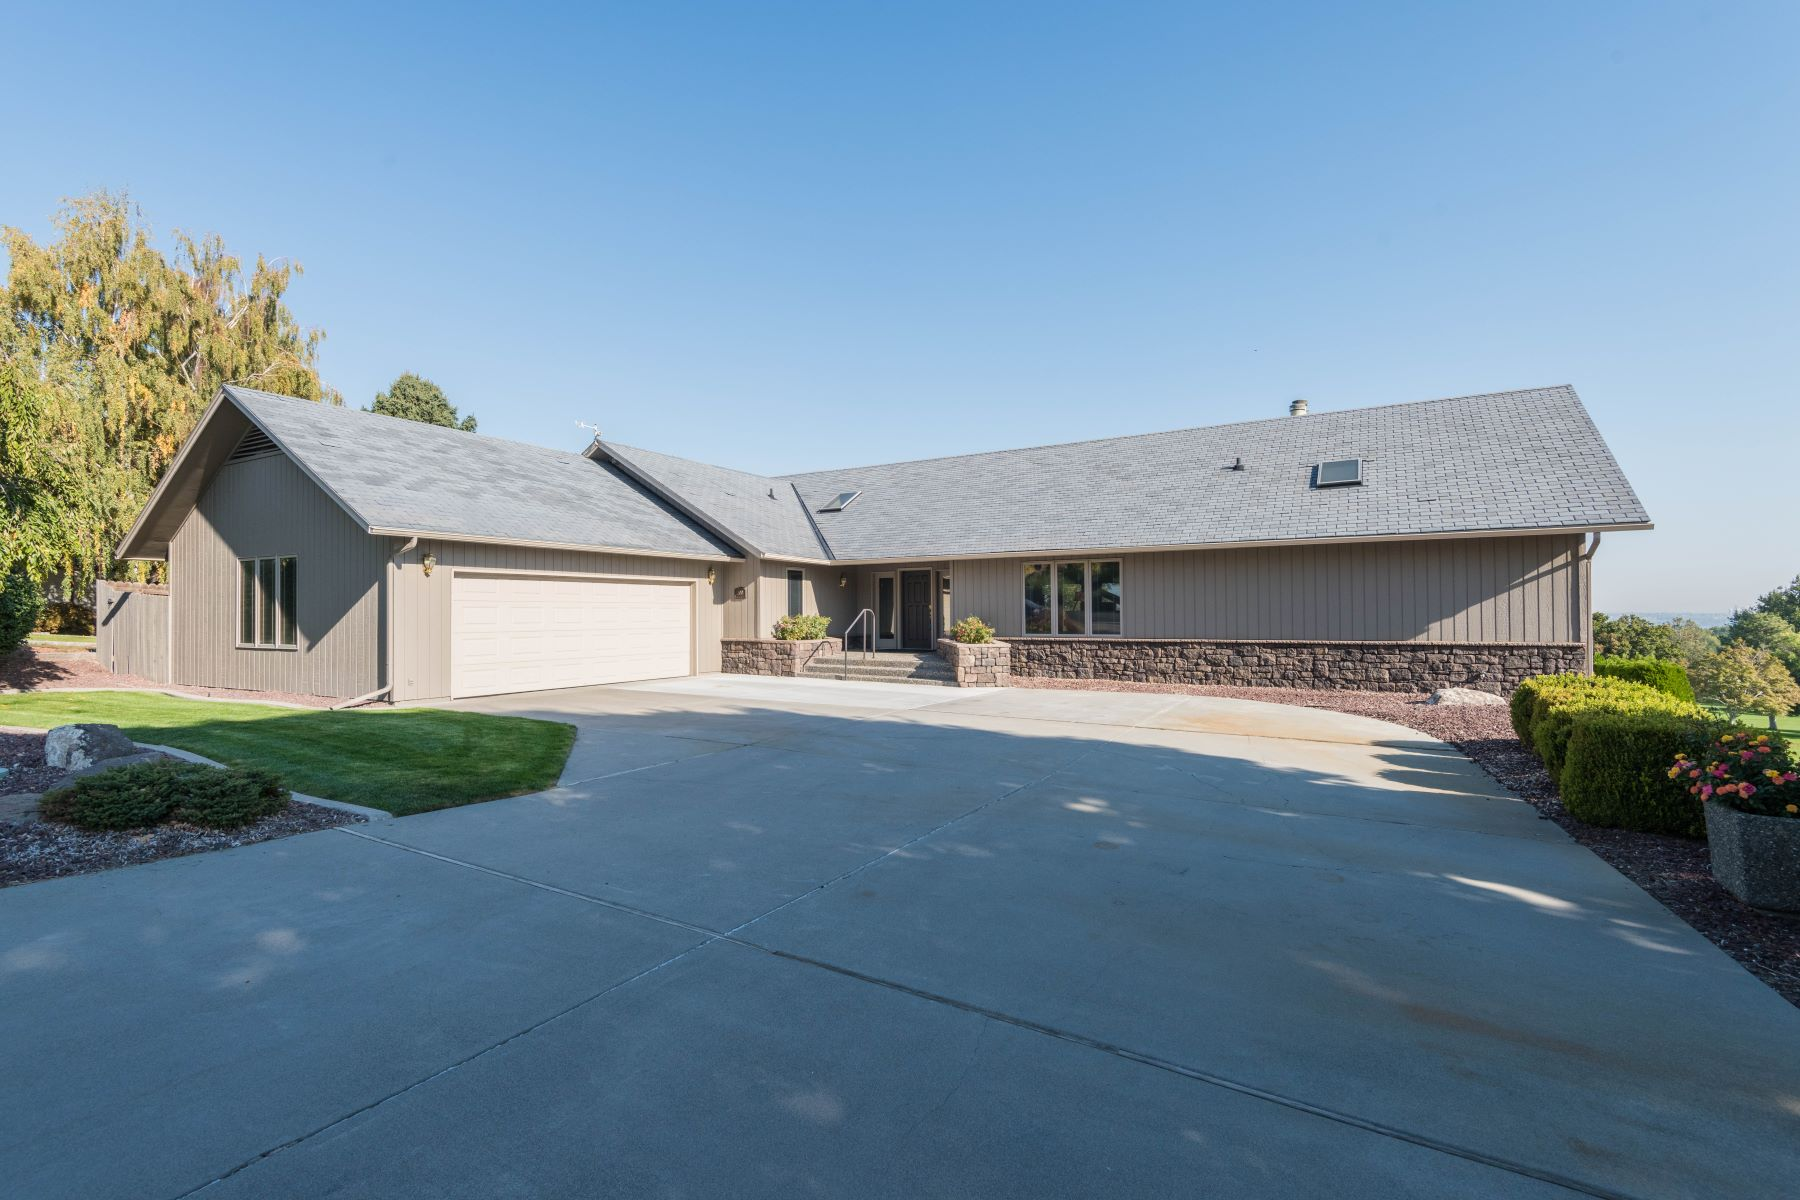 Single Family Home for Sale at Golf Course Frontage and View 200 Hillview Drive Richland, Washington 99352 United States